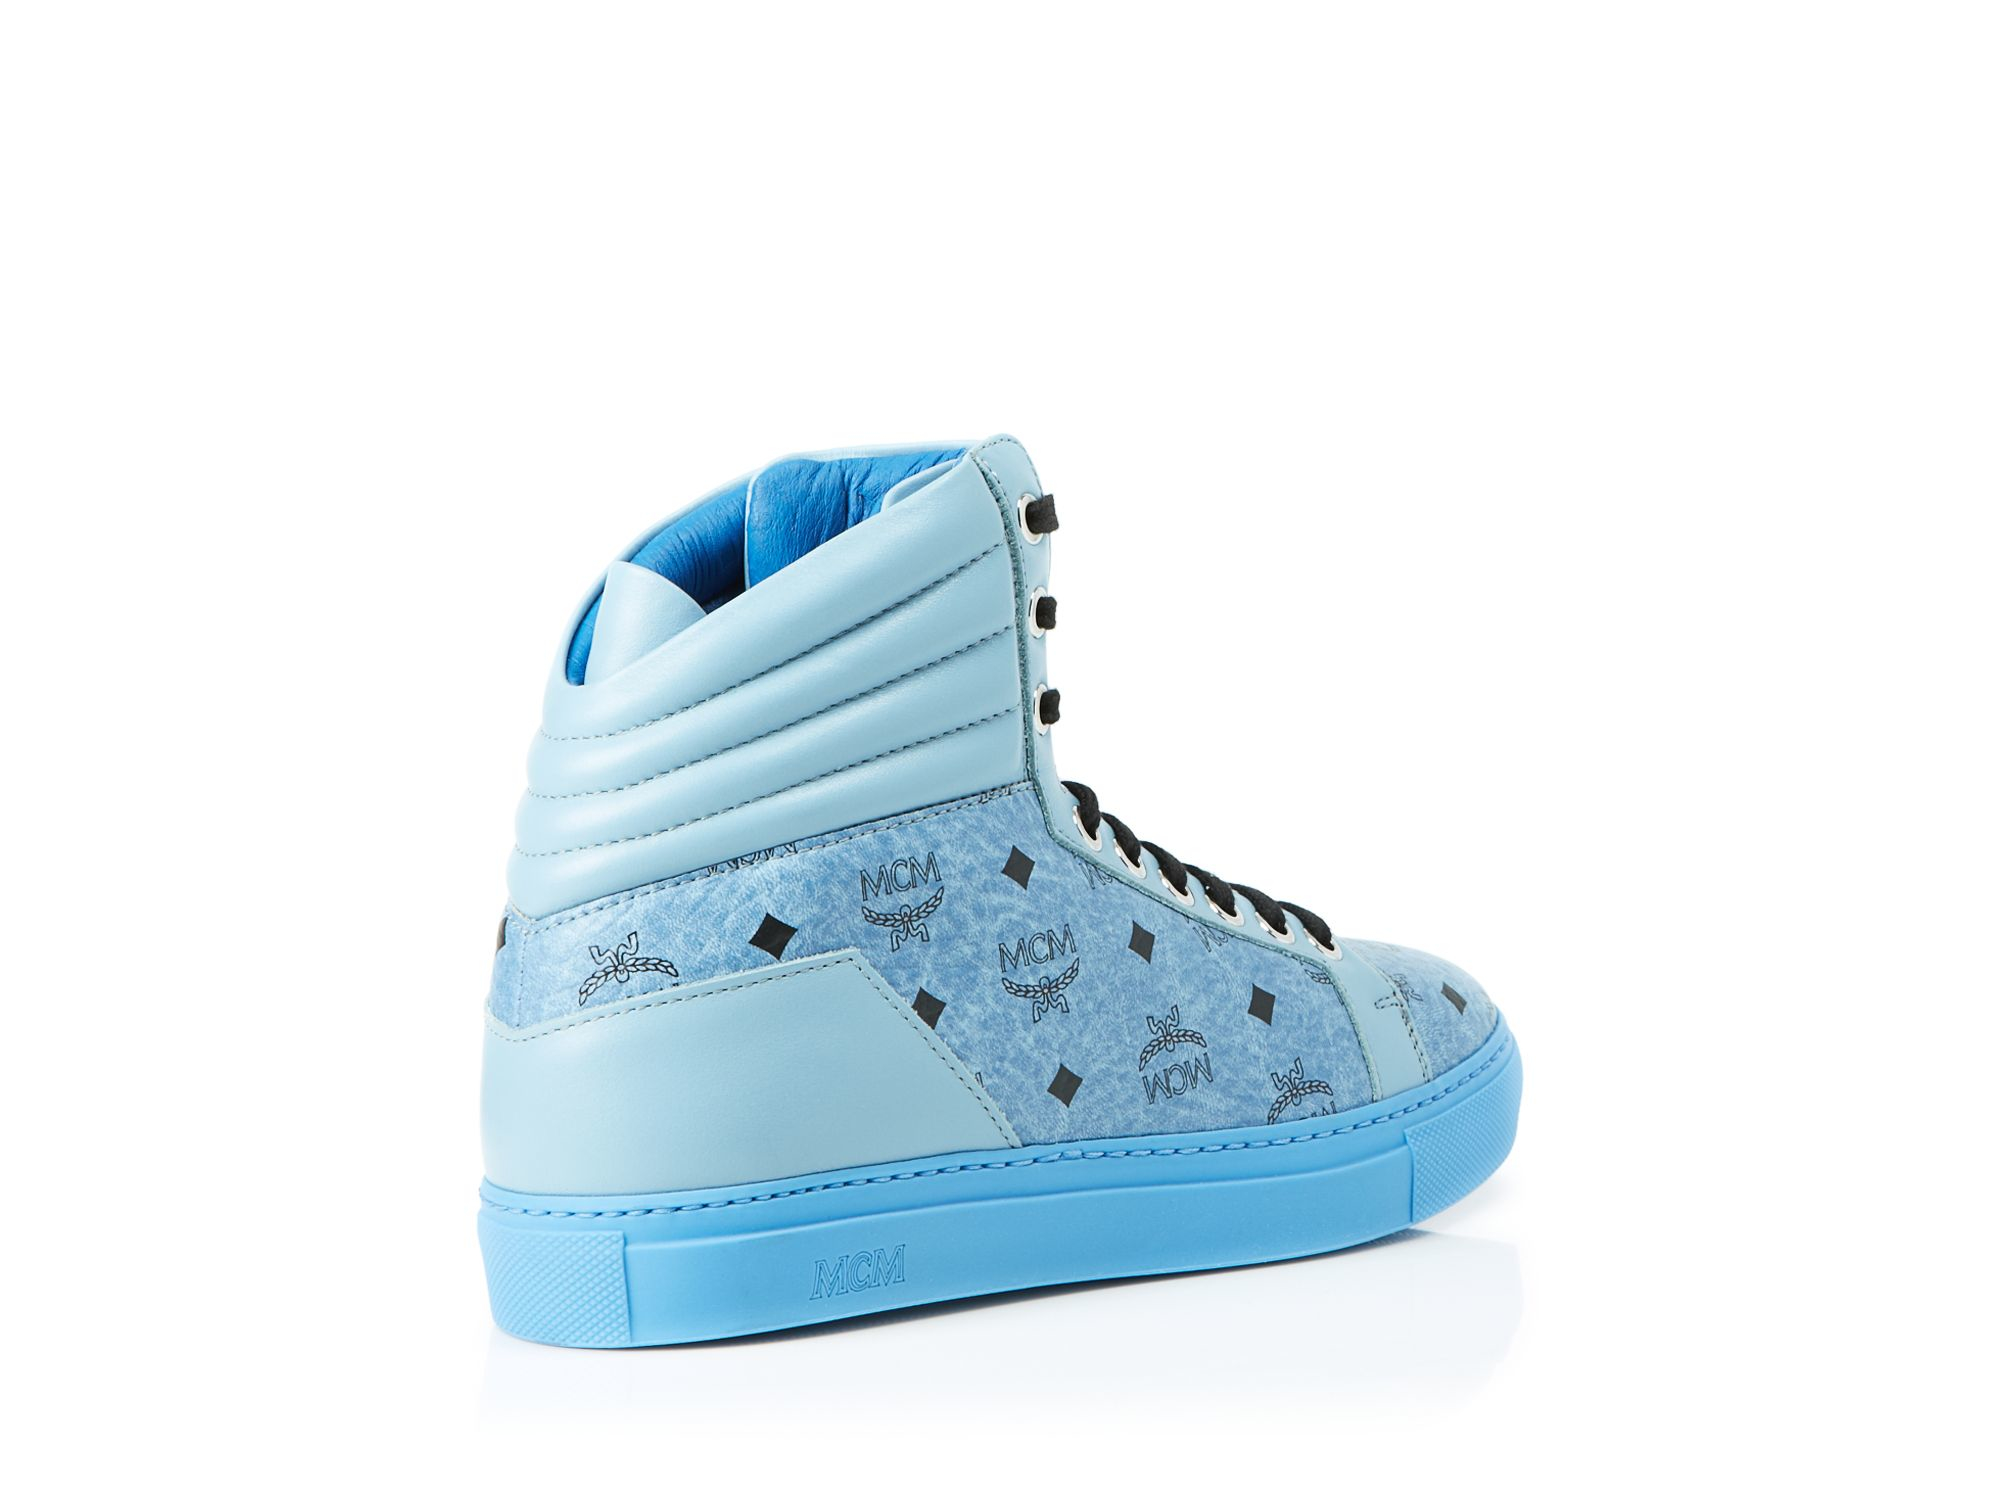 f66989399a66d1 mcm-denim-blue-high-top-sneakers-carryover-logo-blue-product-1-232629194-normal.jpeg